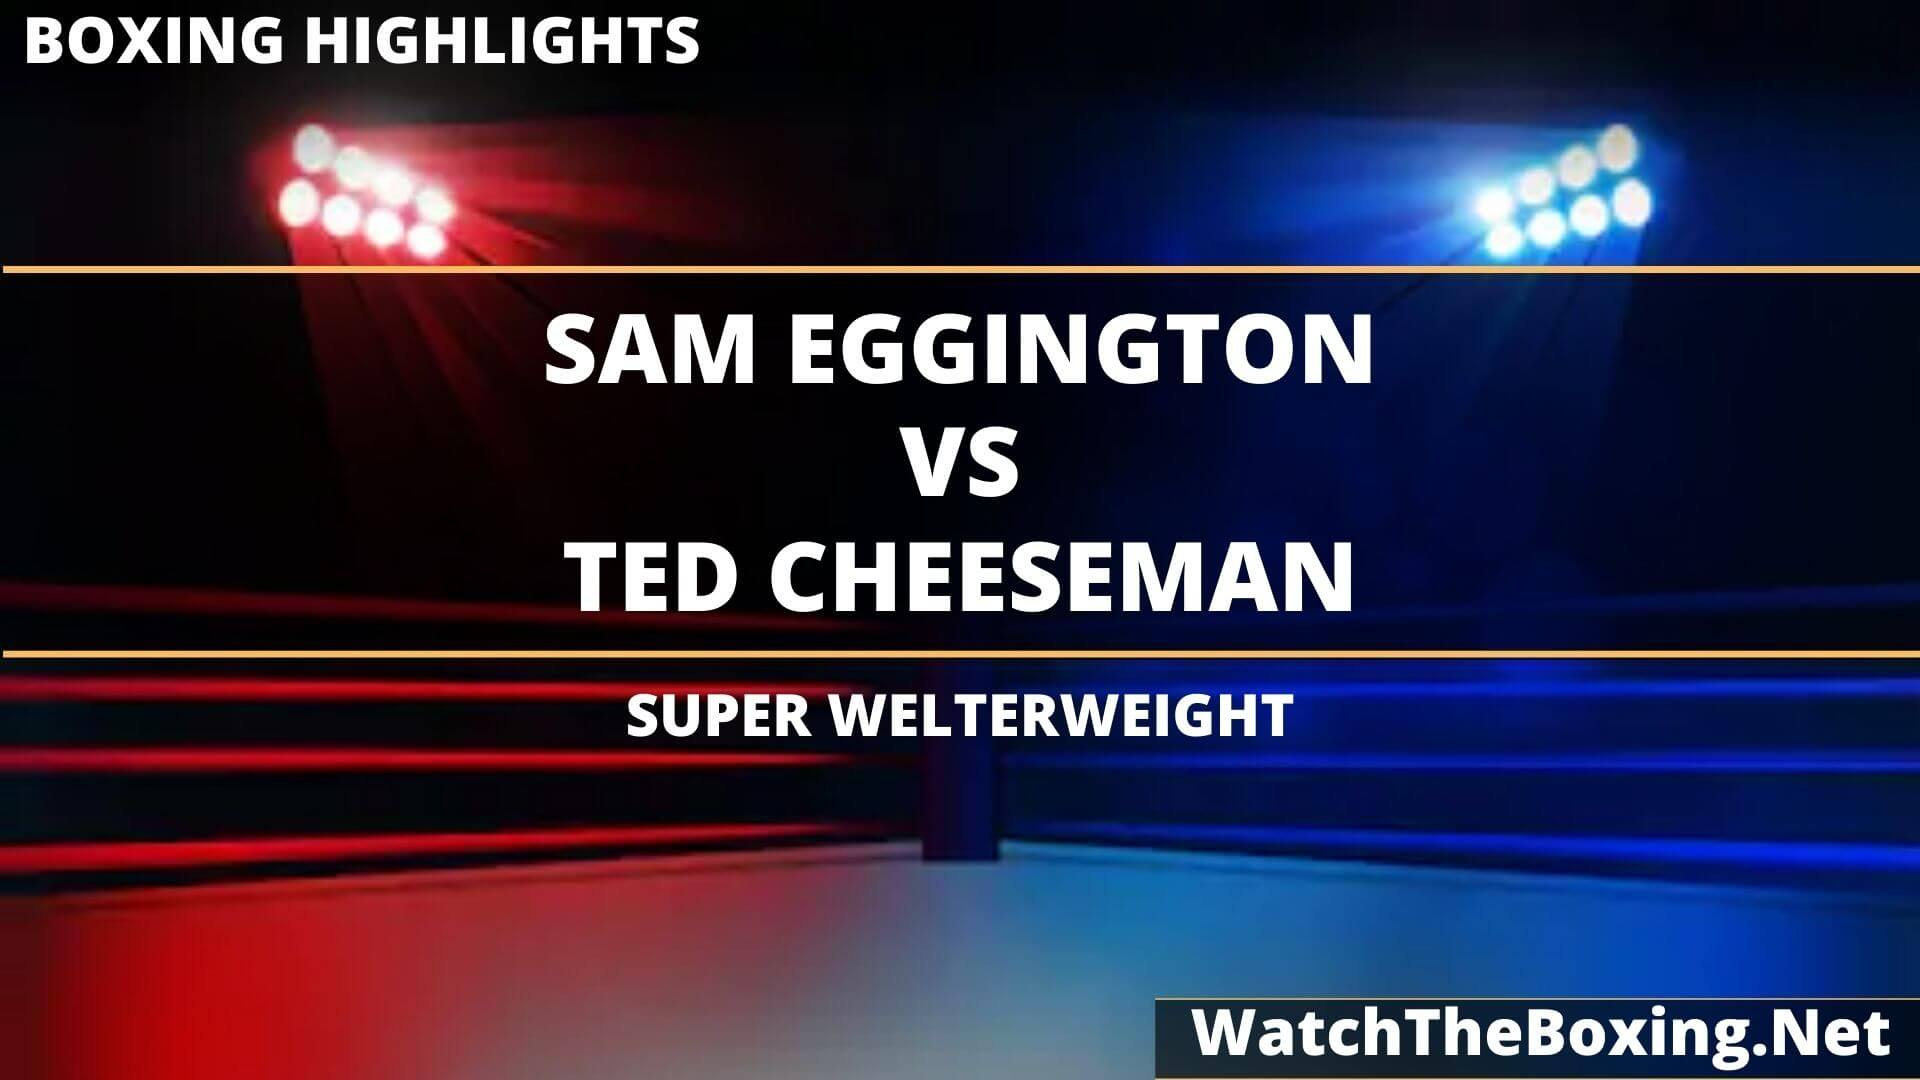 Sam Eggington Vs Ted Cheeseman Highlights 2020 Super Welterweight